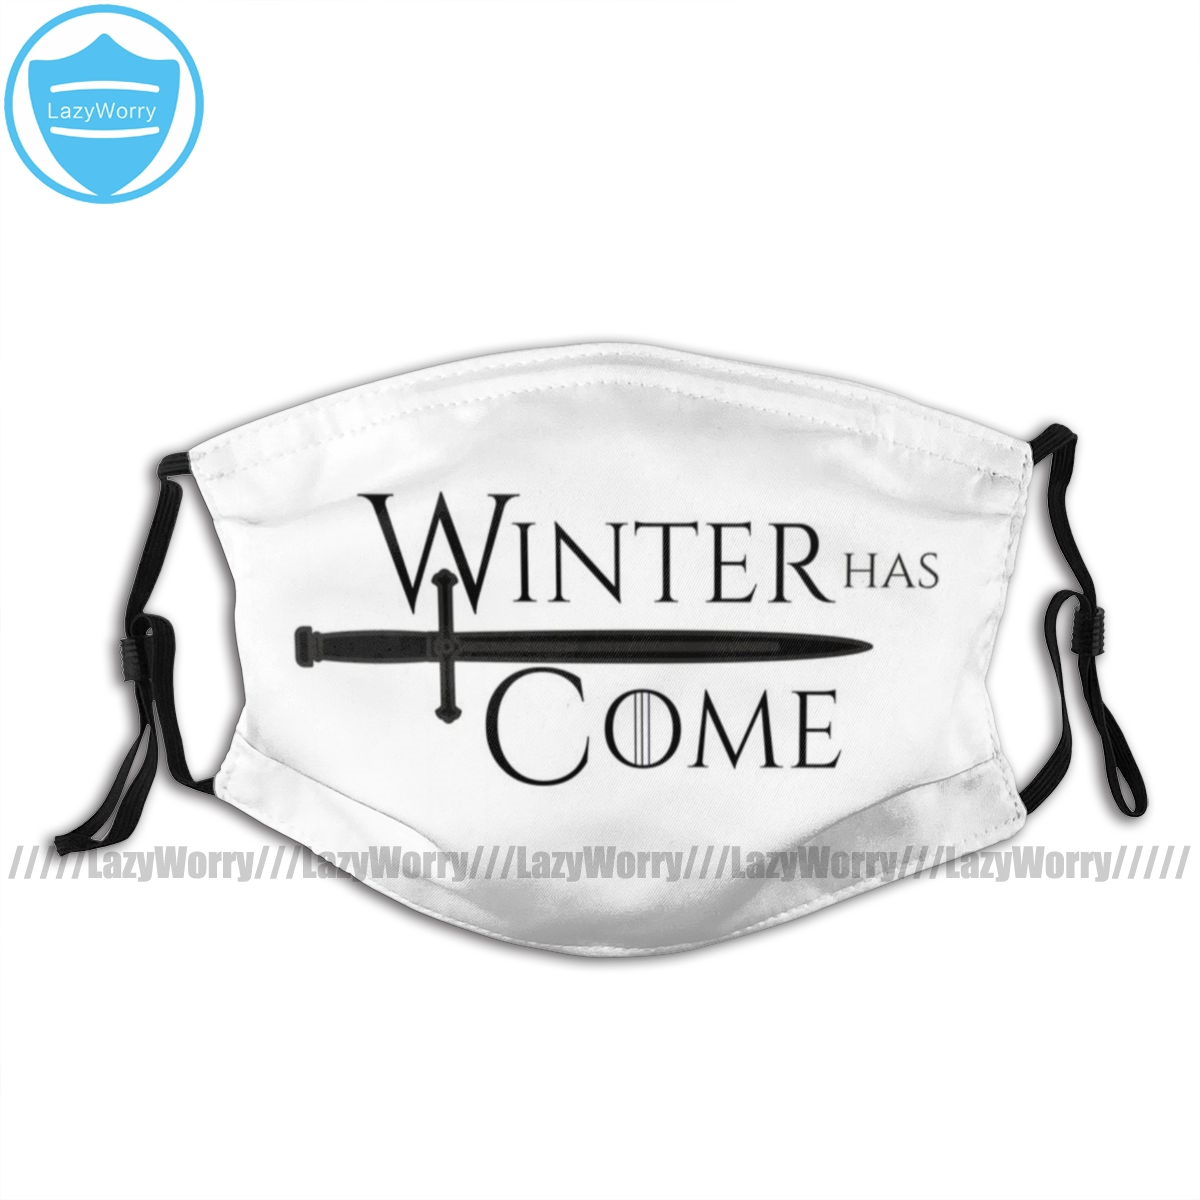 Game Of Thrones Mouth Face Mask Game Of Thrones Winter Has Come Facial Mask Kawai Funny With 2 Filters For Adult